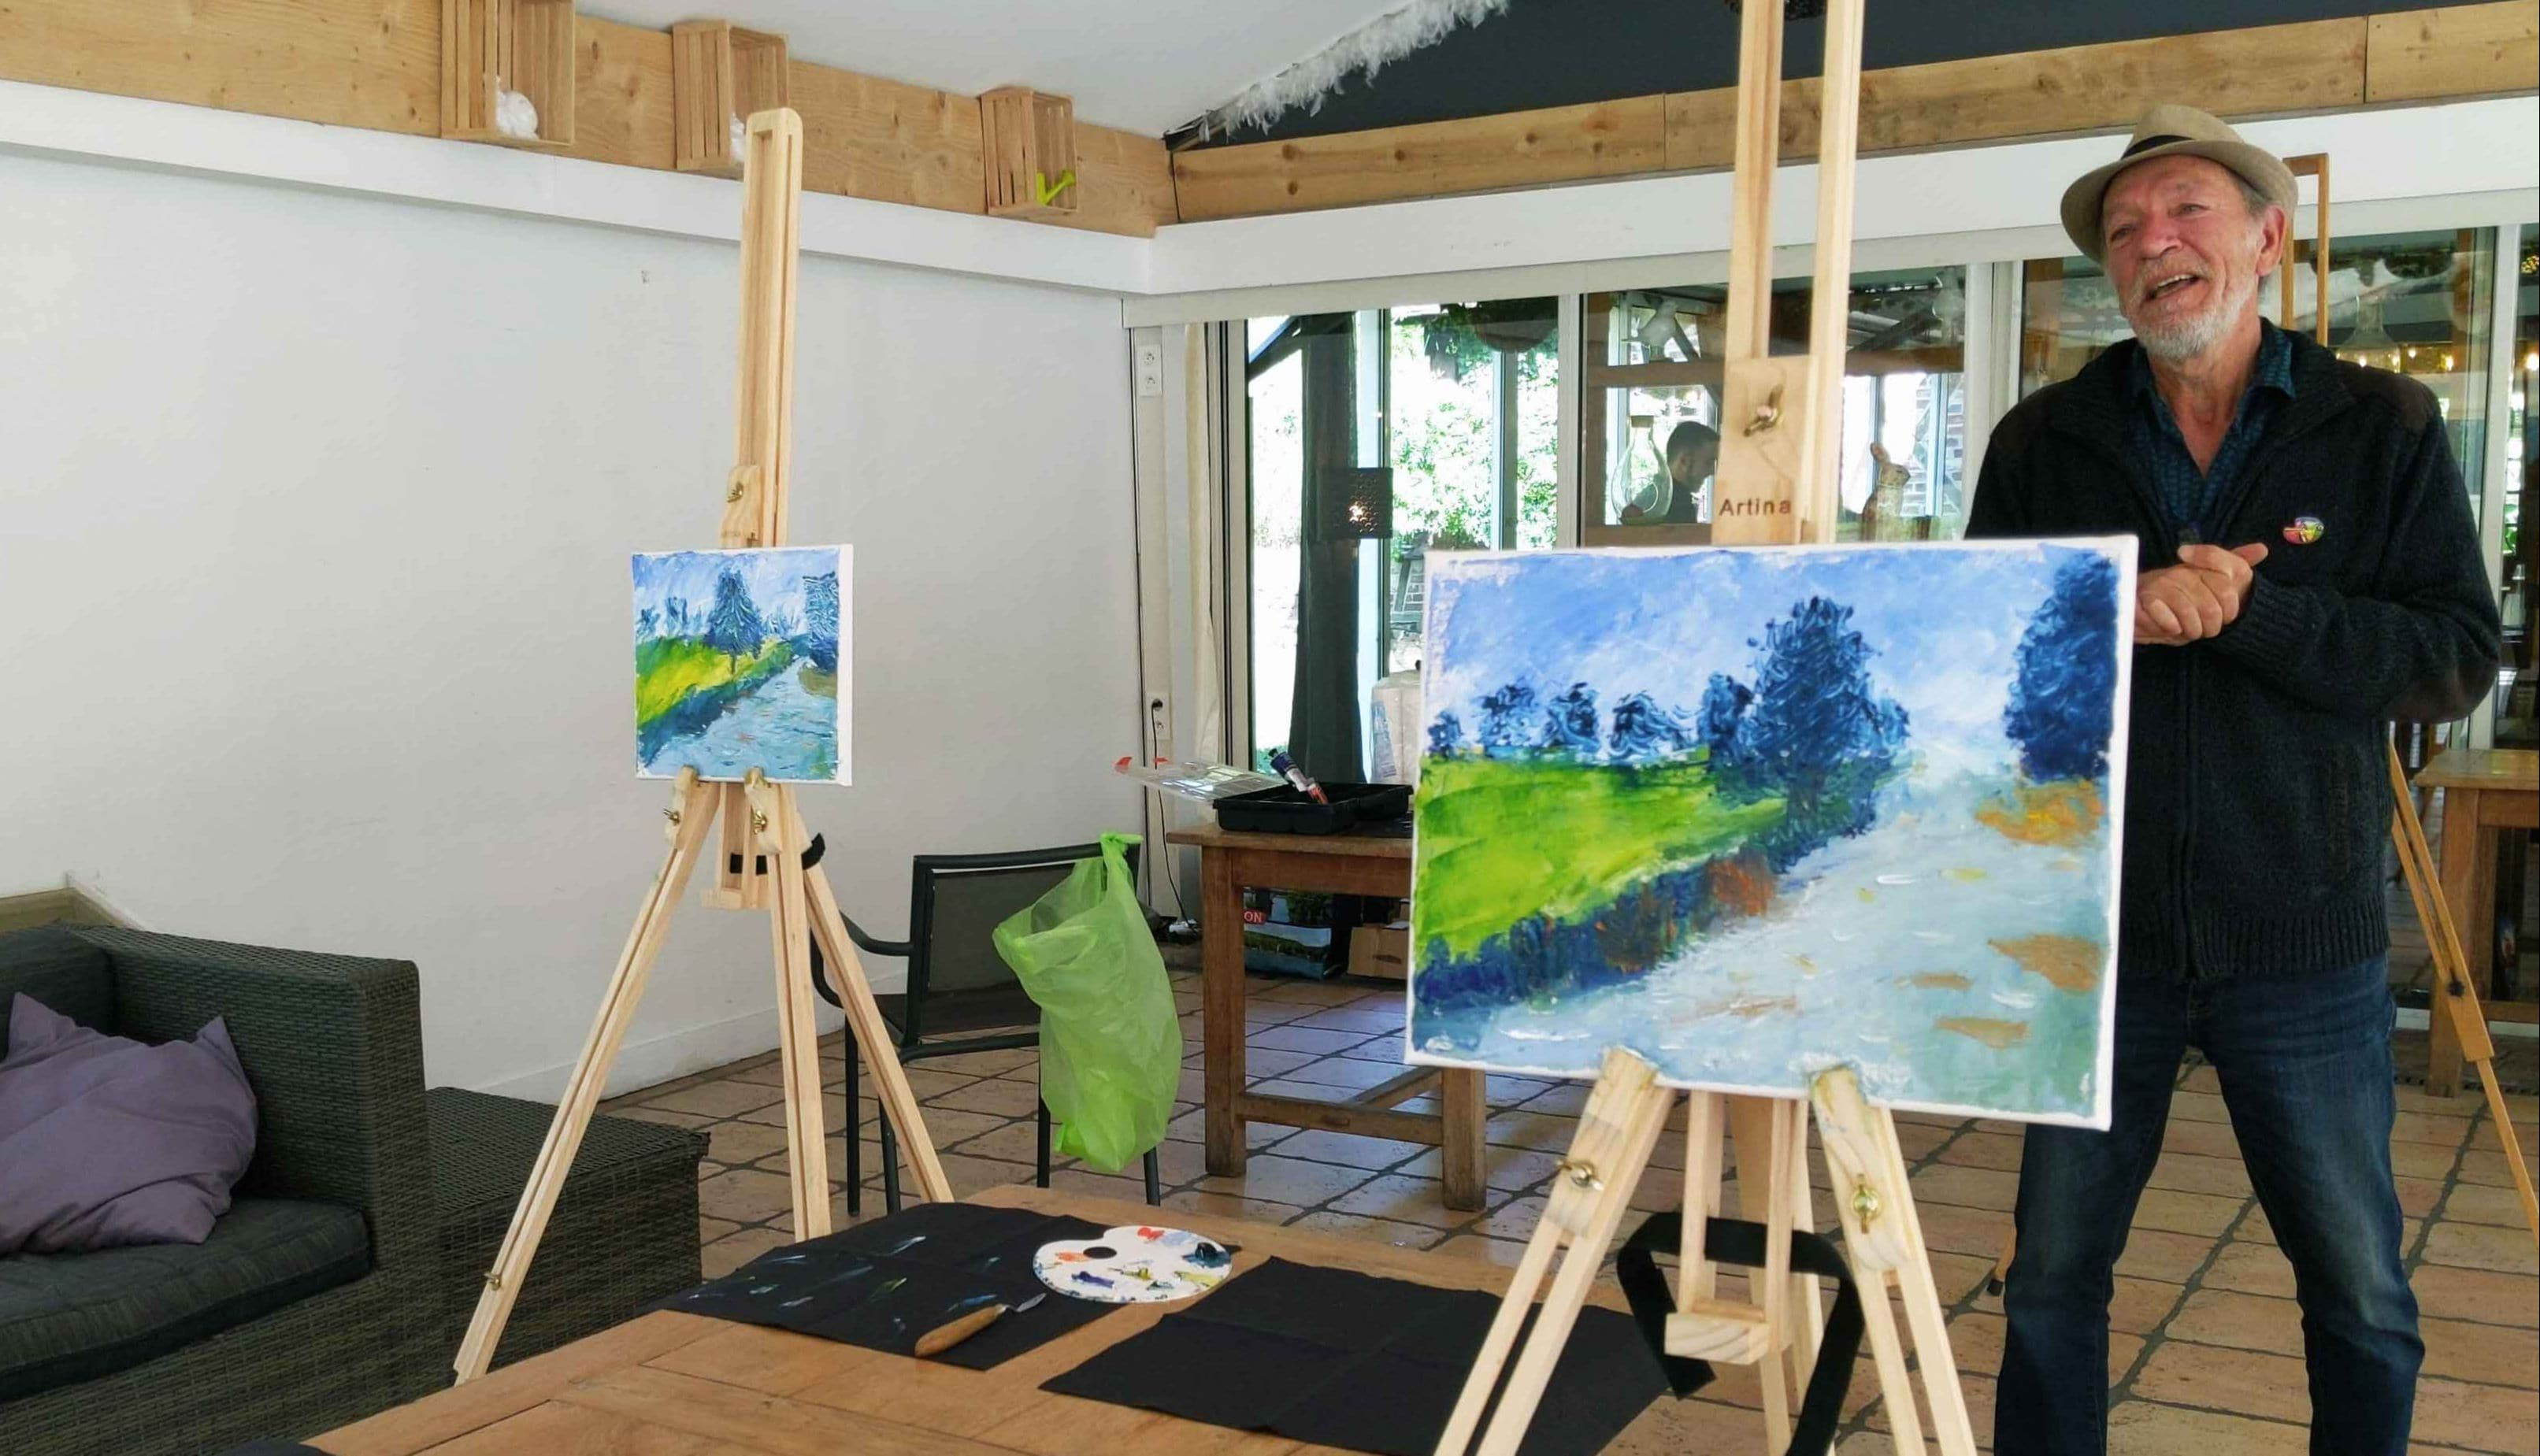 Painting workshop in the Moulin de Fourges restaurant